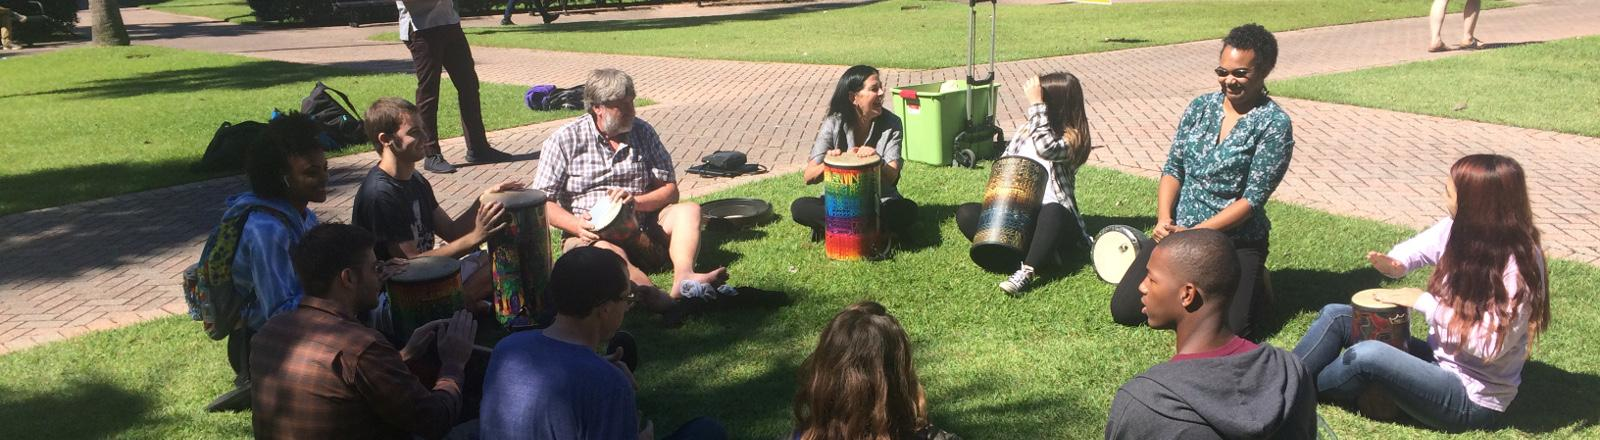 Loyola Music Therapy students play in a drum circle in Palm Court.